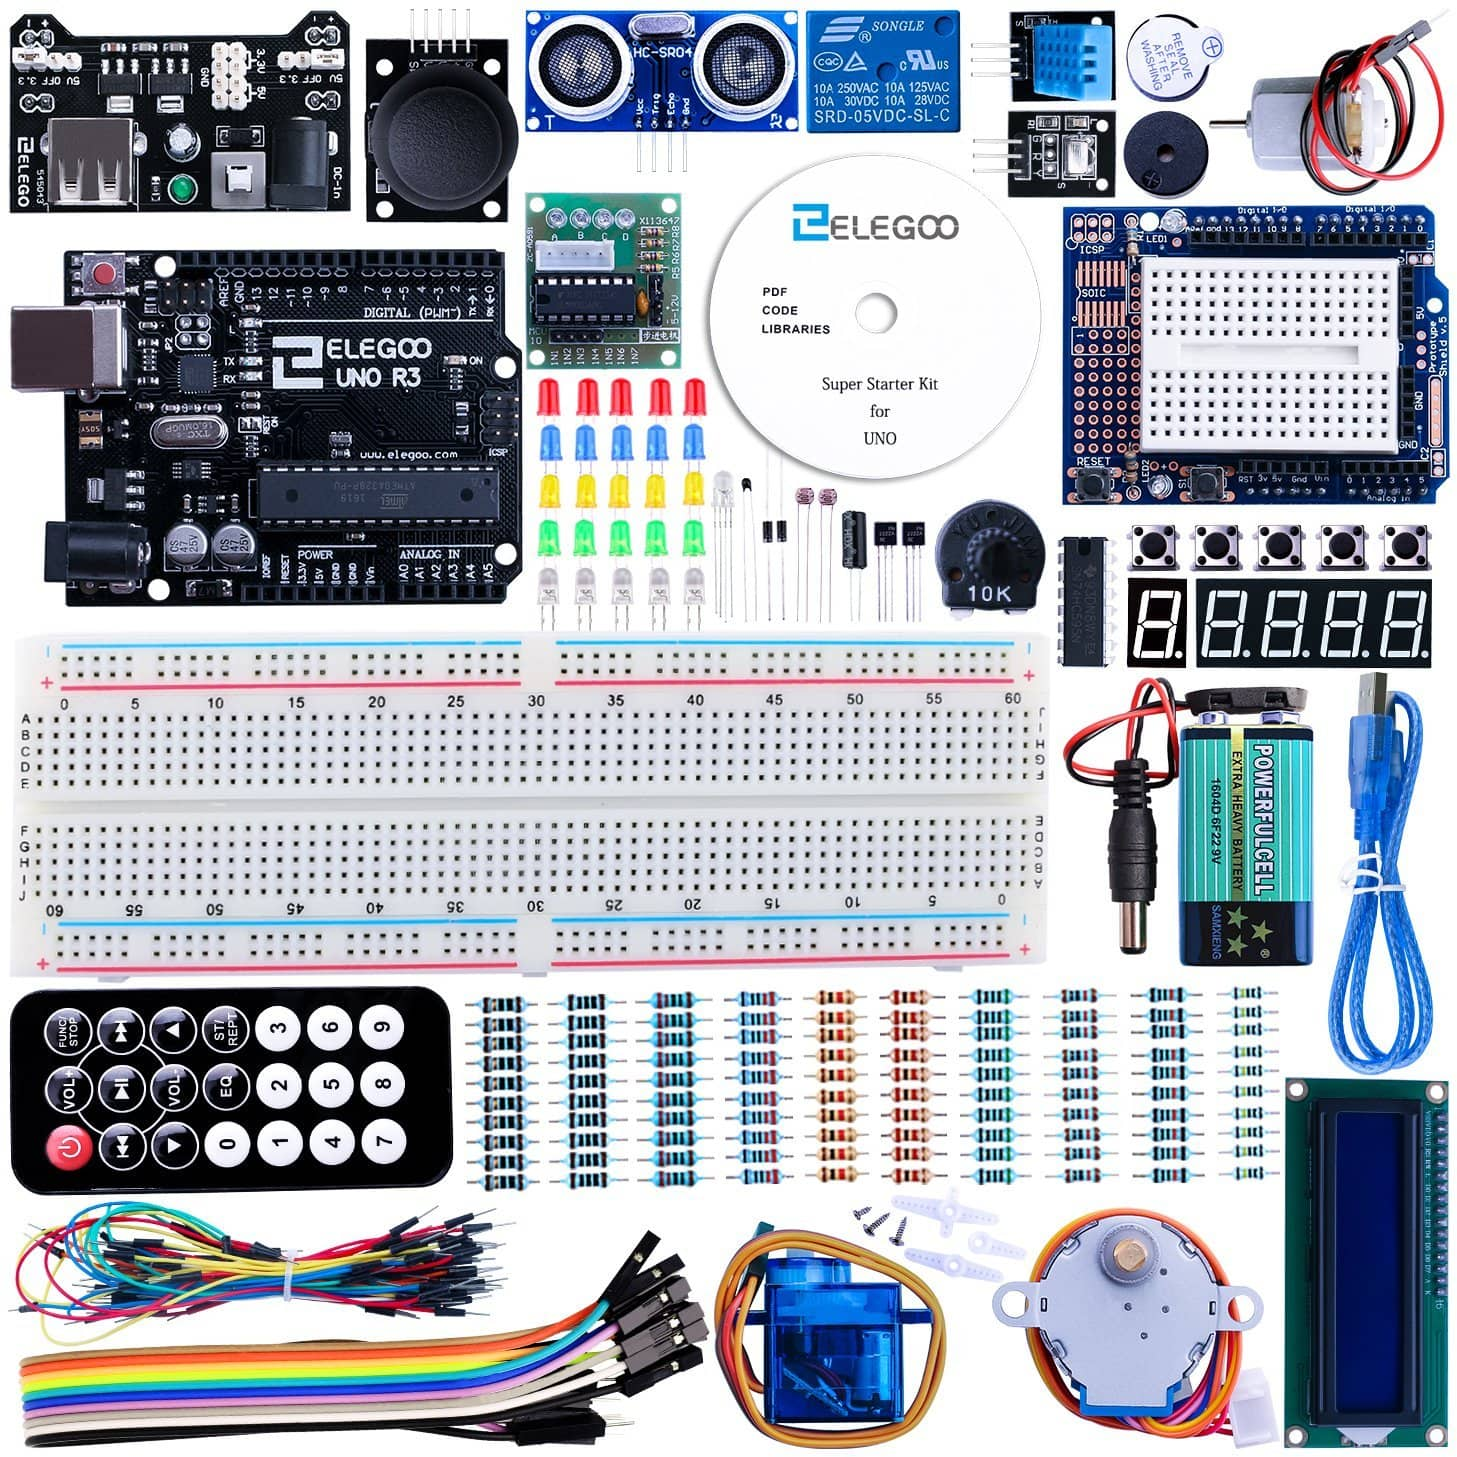 Elegoo UNO Project Super Starter Kit for Arduino $22 @ Amazon